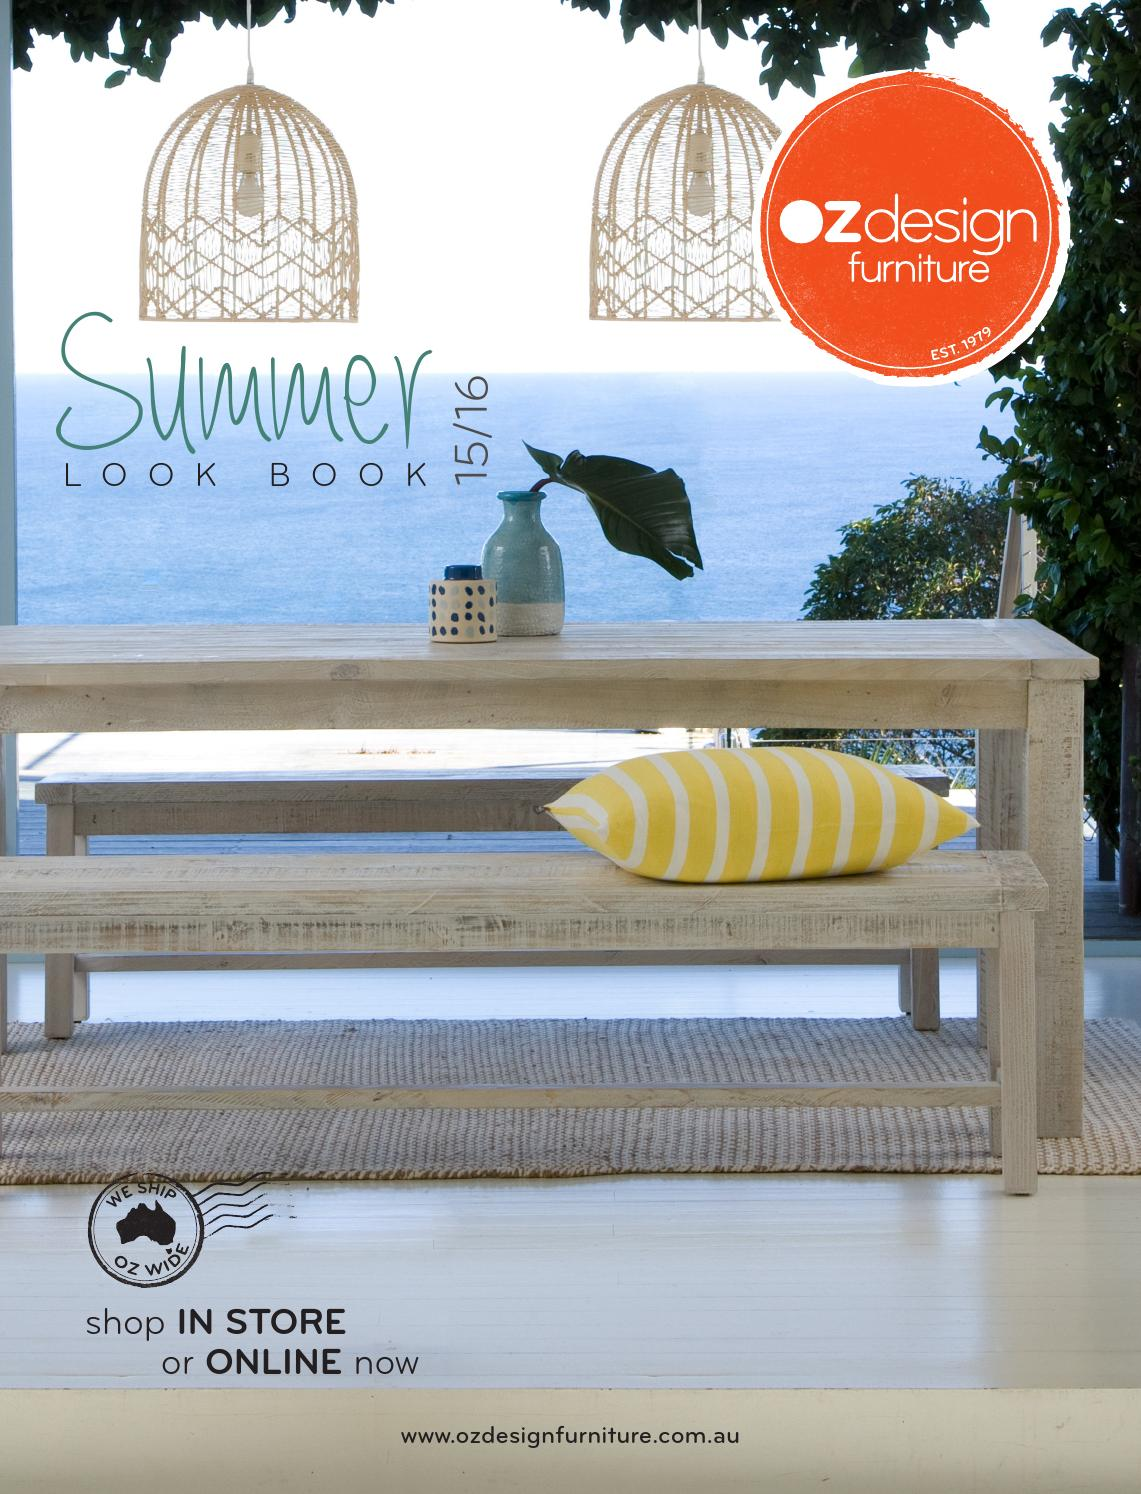 jarvis chair oz design dallas cowboys chairs furniture summer 15 16 look book by